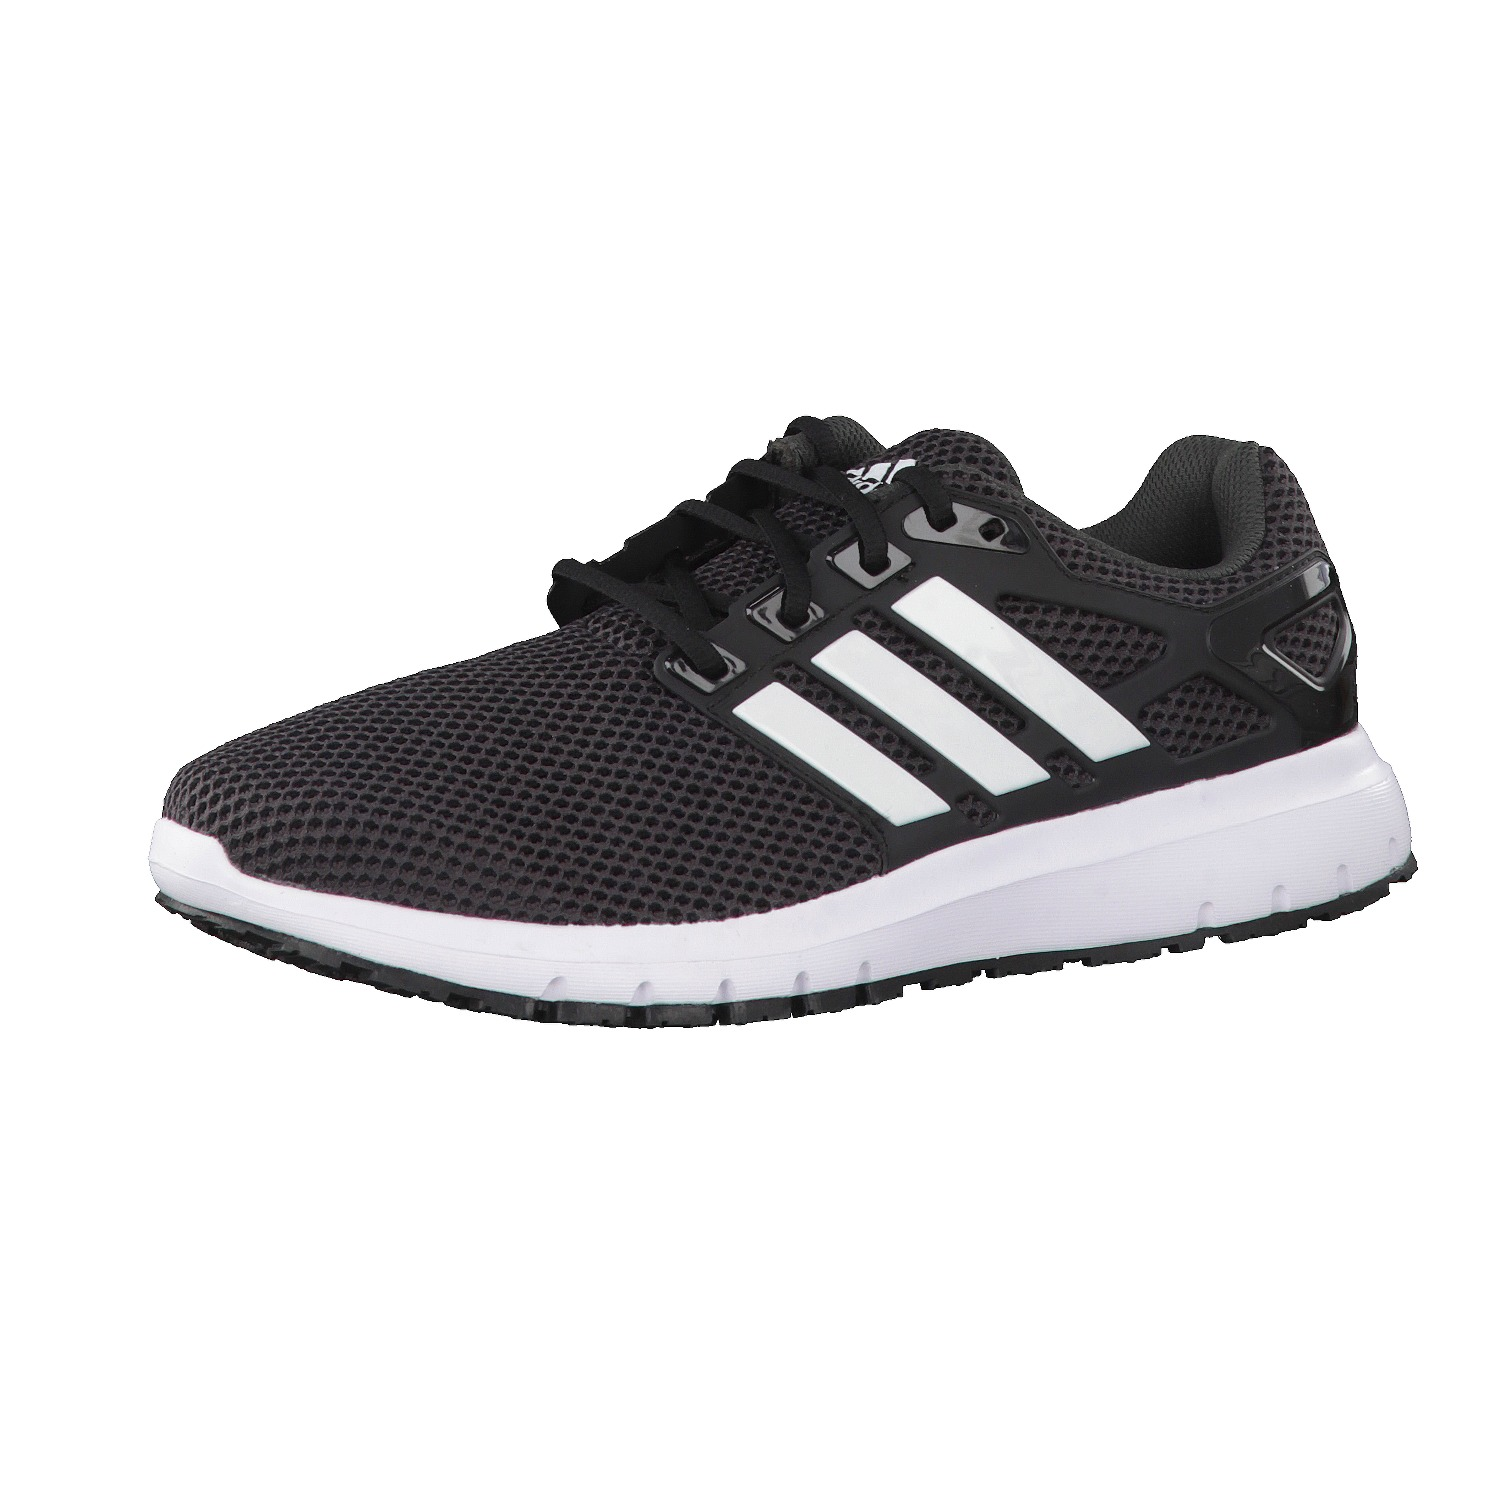 adidas Herren Laufschuhe energy cloud BY1924 40 2/3